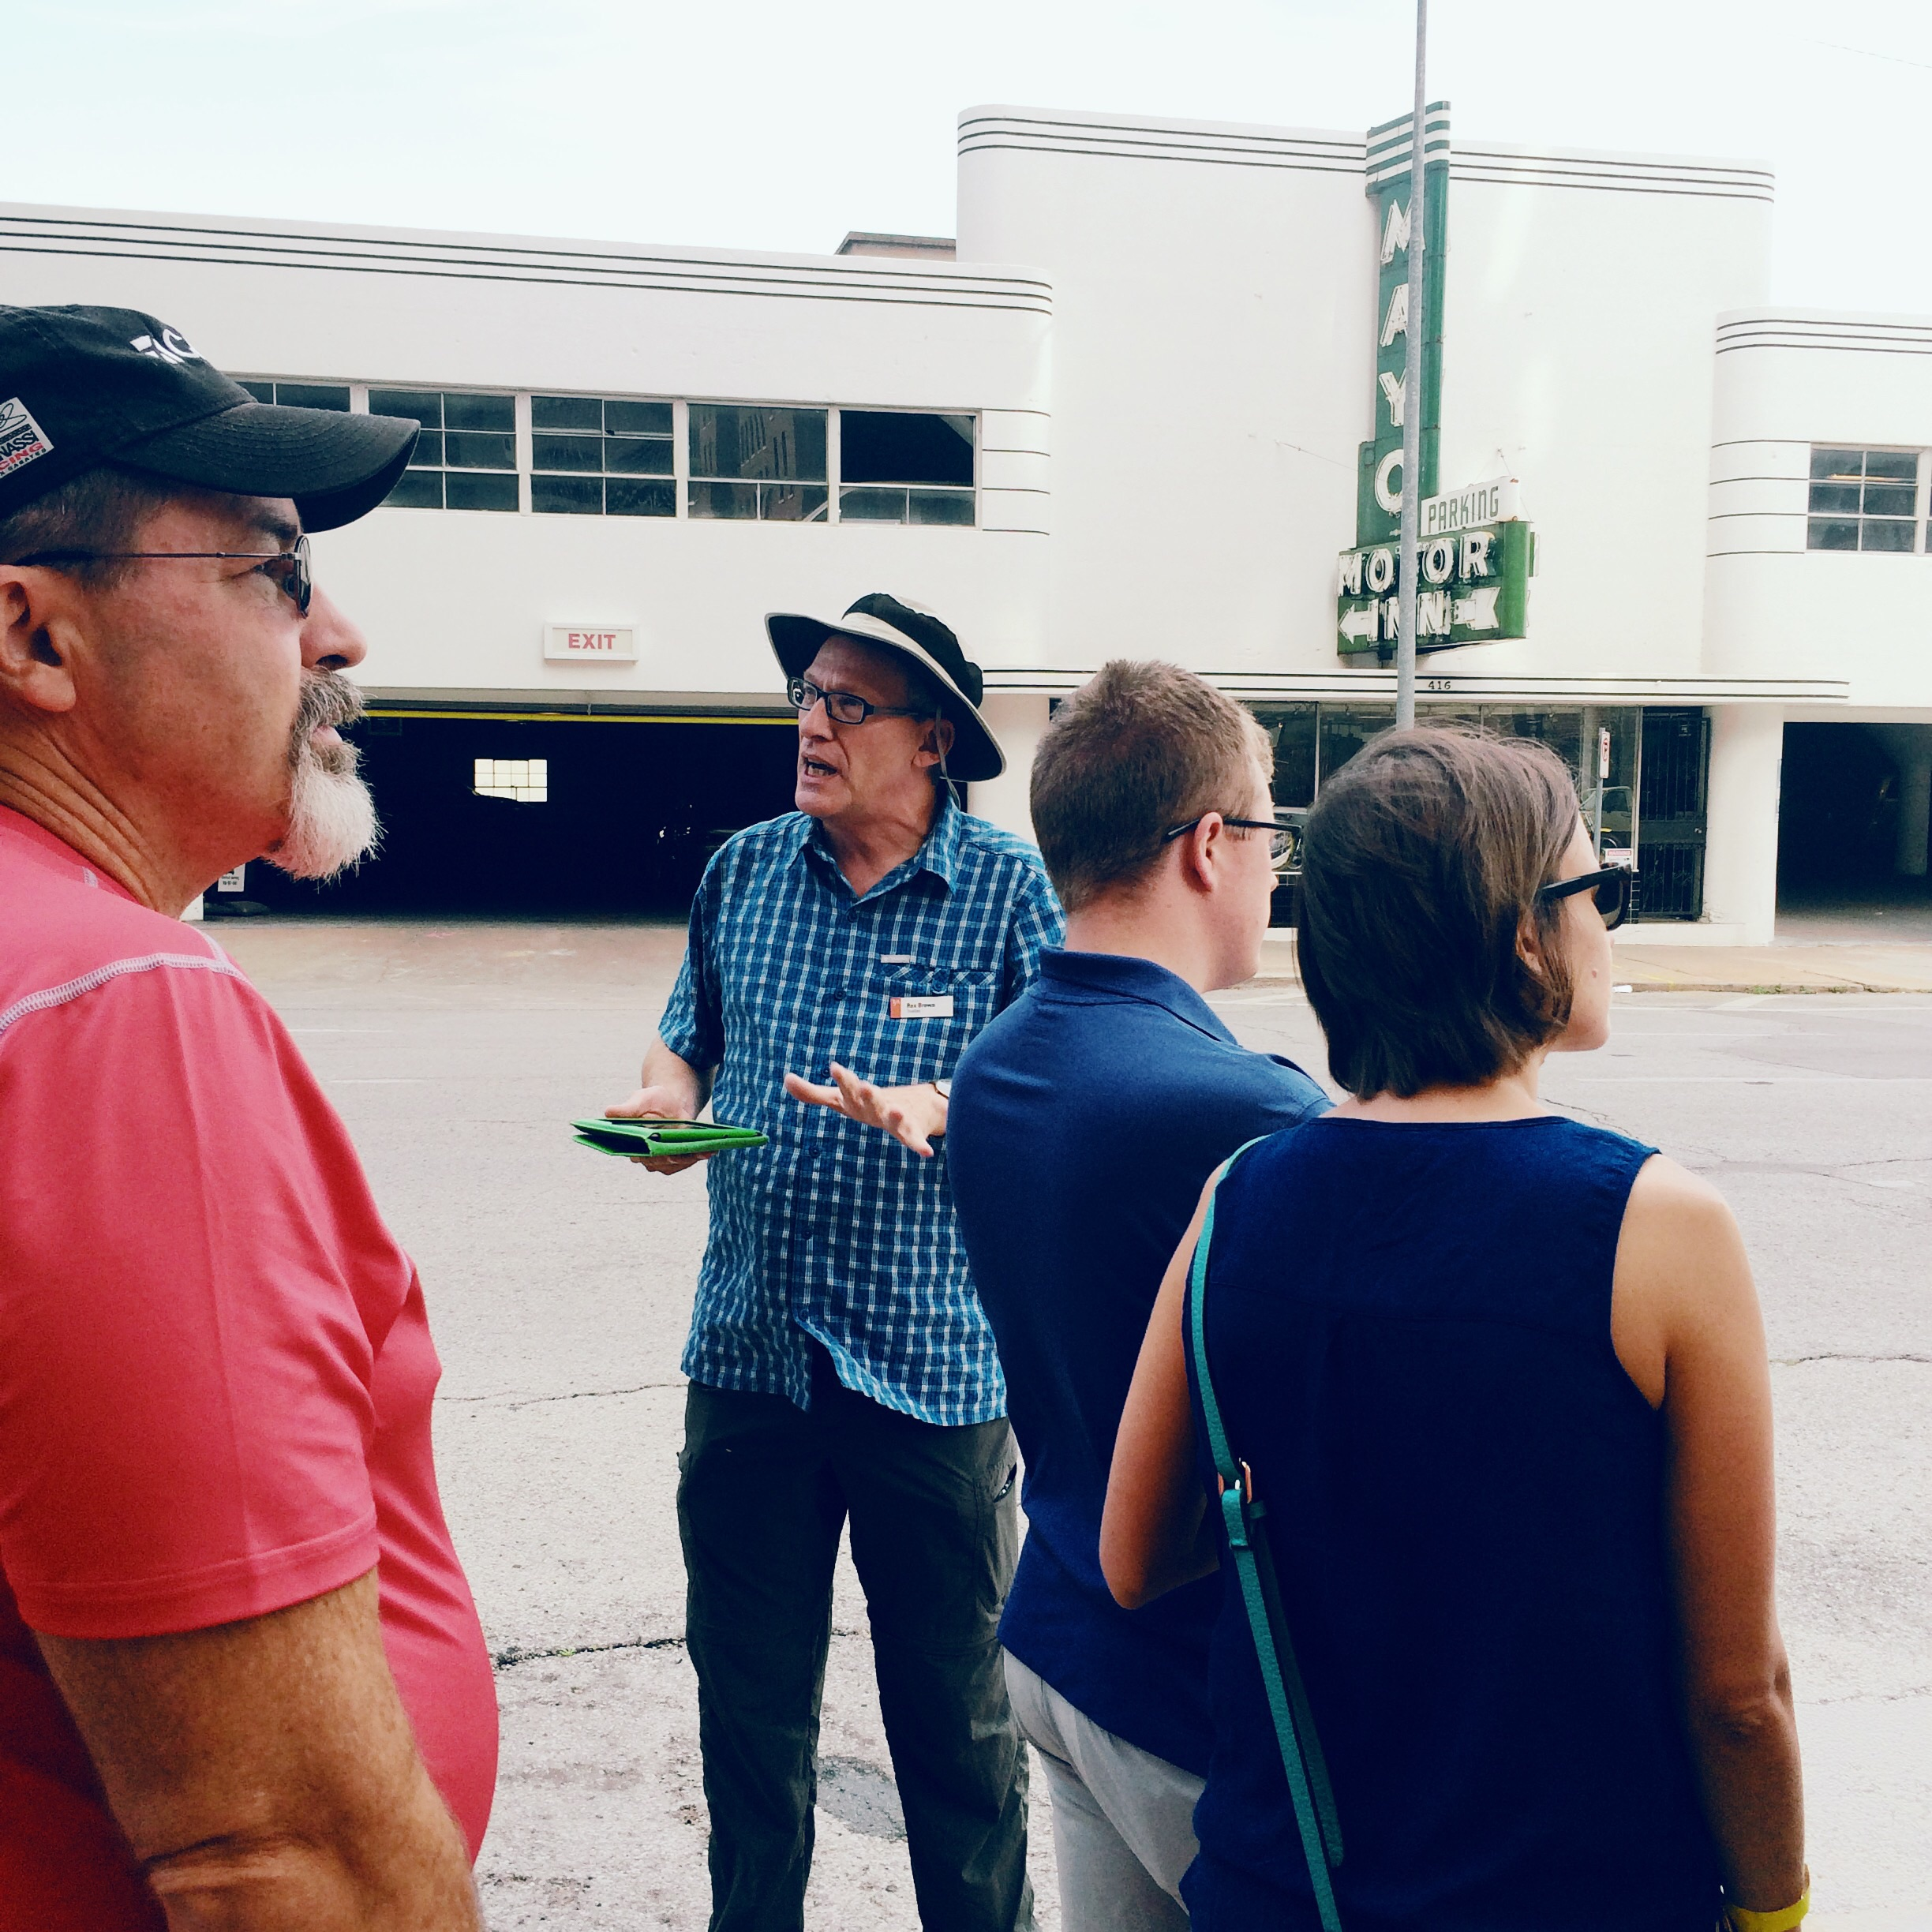 This sweet guy in the hat was our tour guide and he was a weath of knowledge PLUS you could tell he just has a passion for Tulsa and it's story.